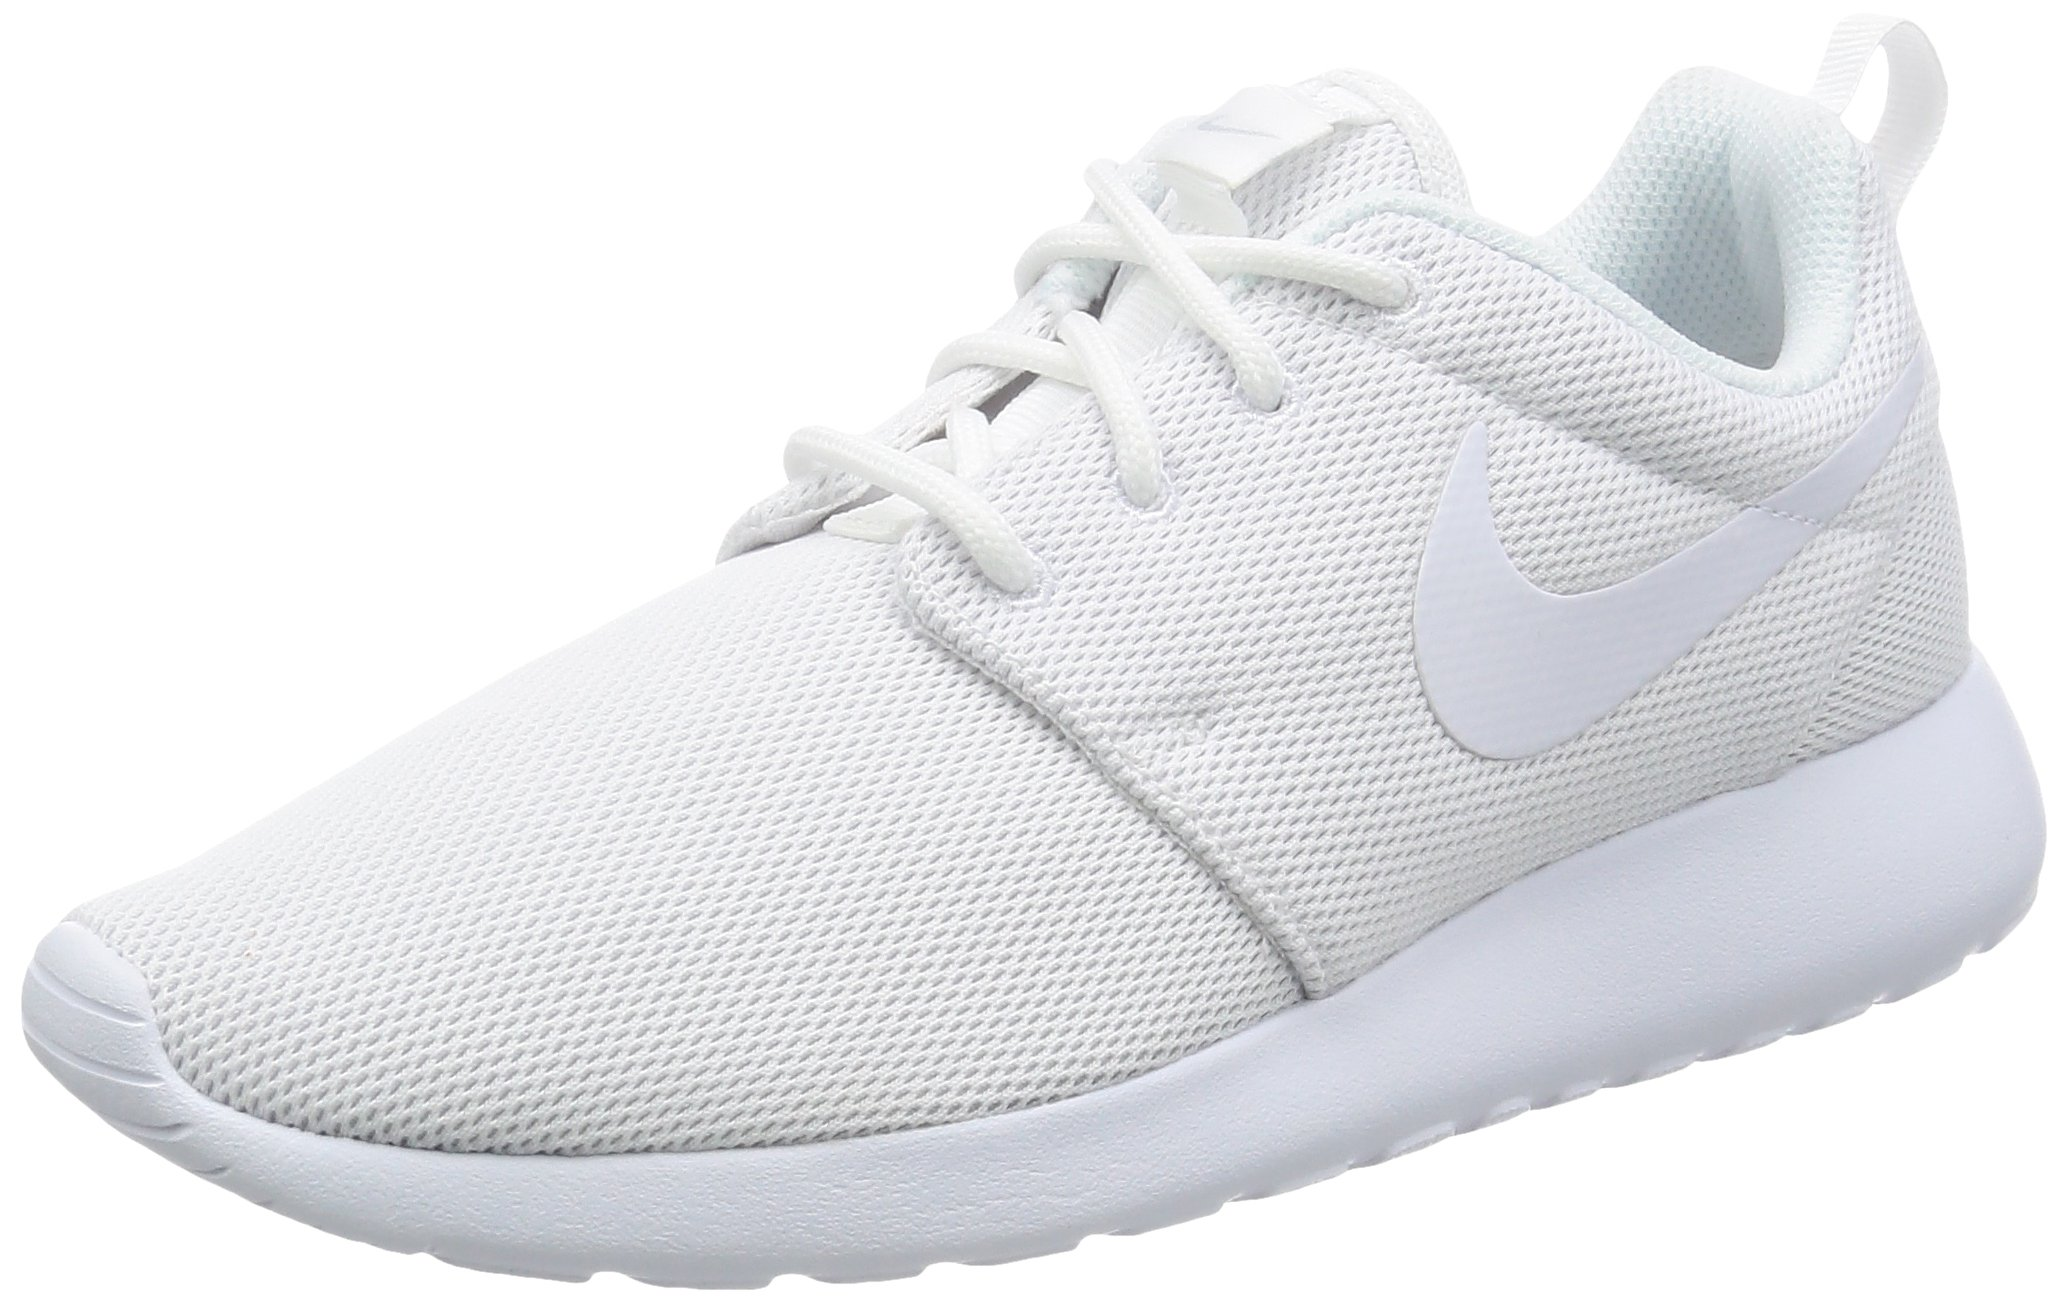 e1a0f42f1afc Galleon - Nike Womens Roshe One White White Pure Platinum Running Shoe 8.5  Women US